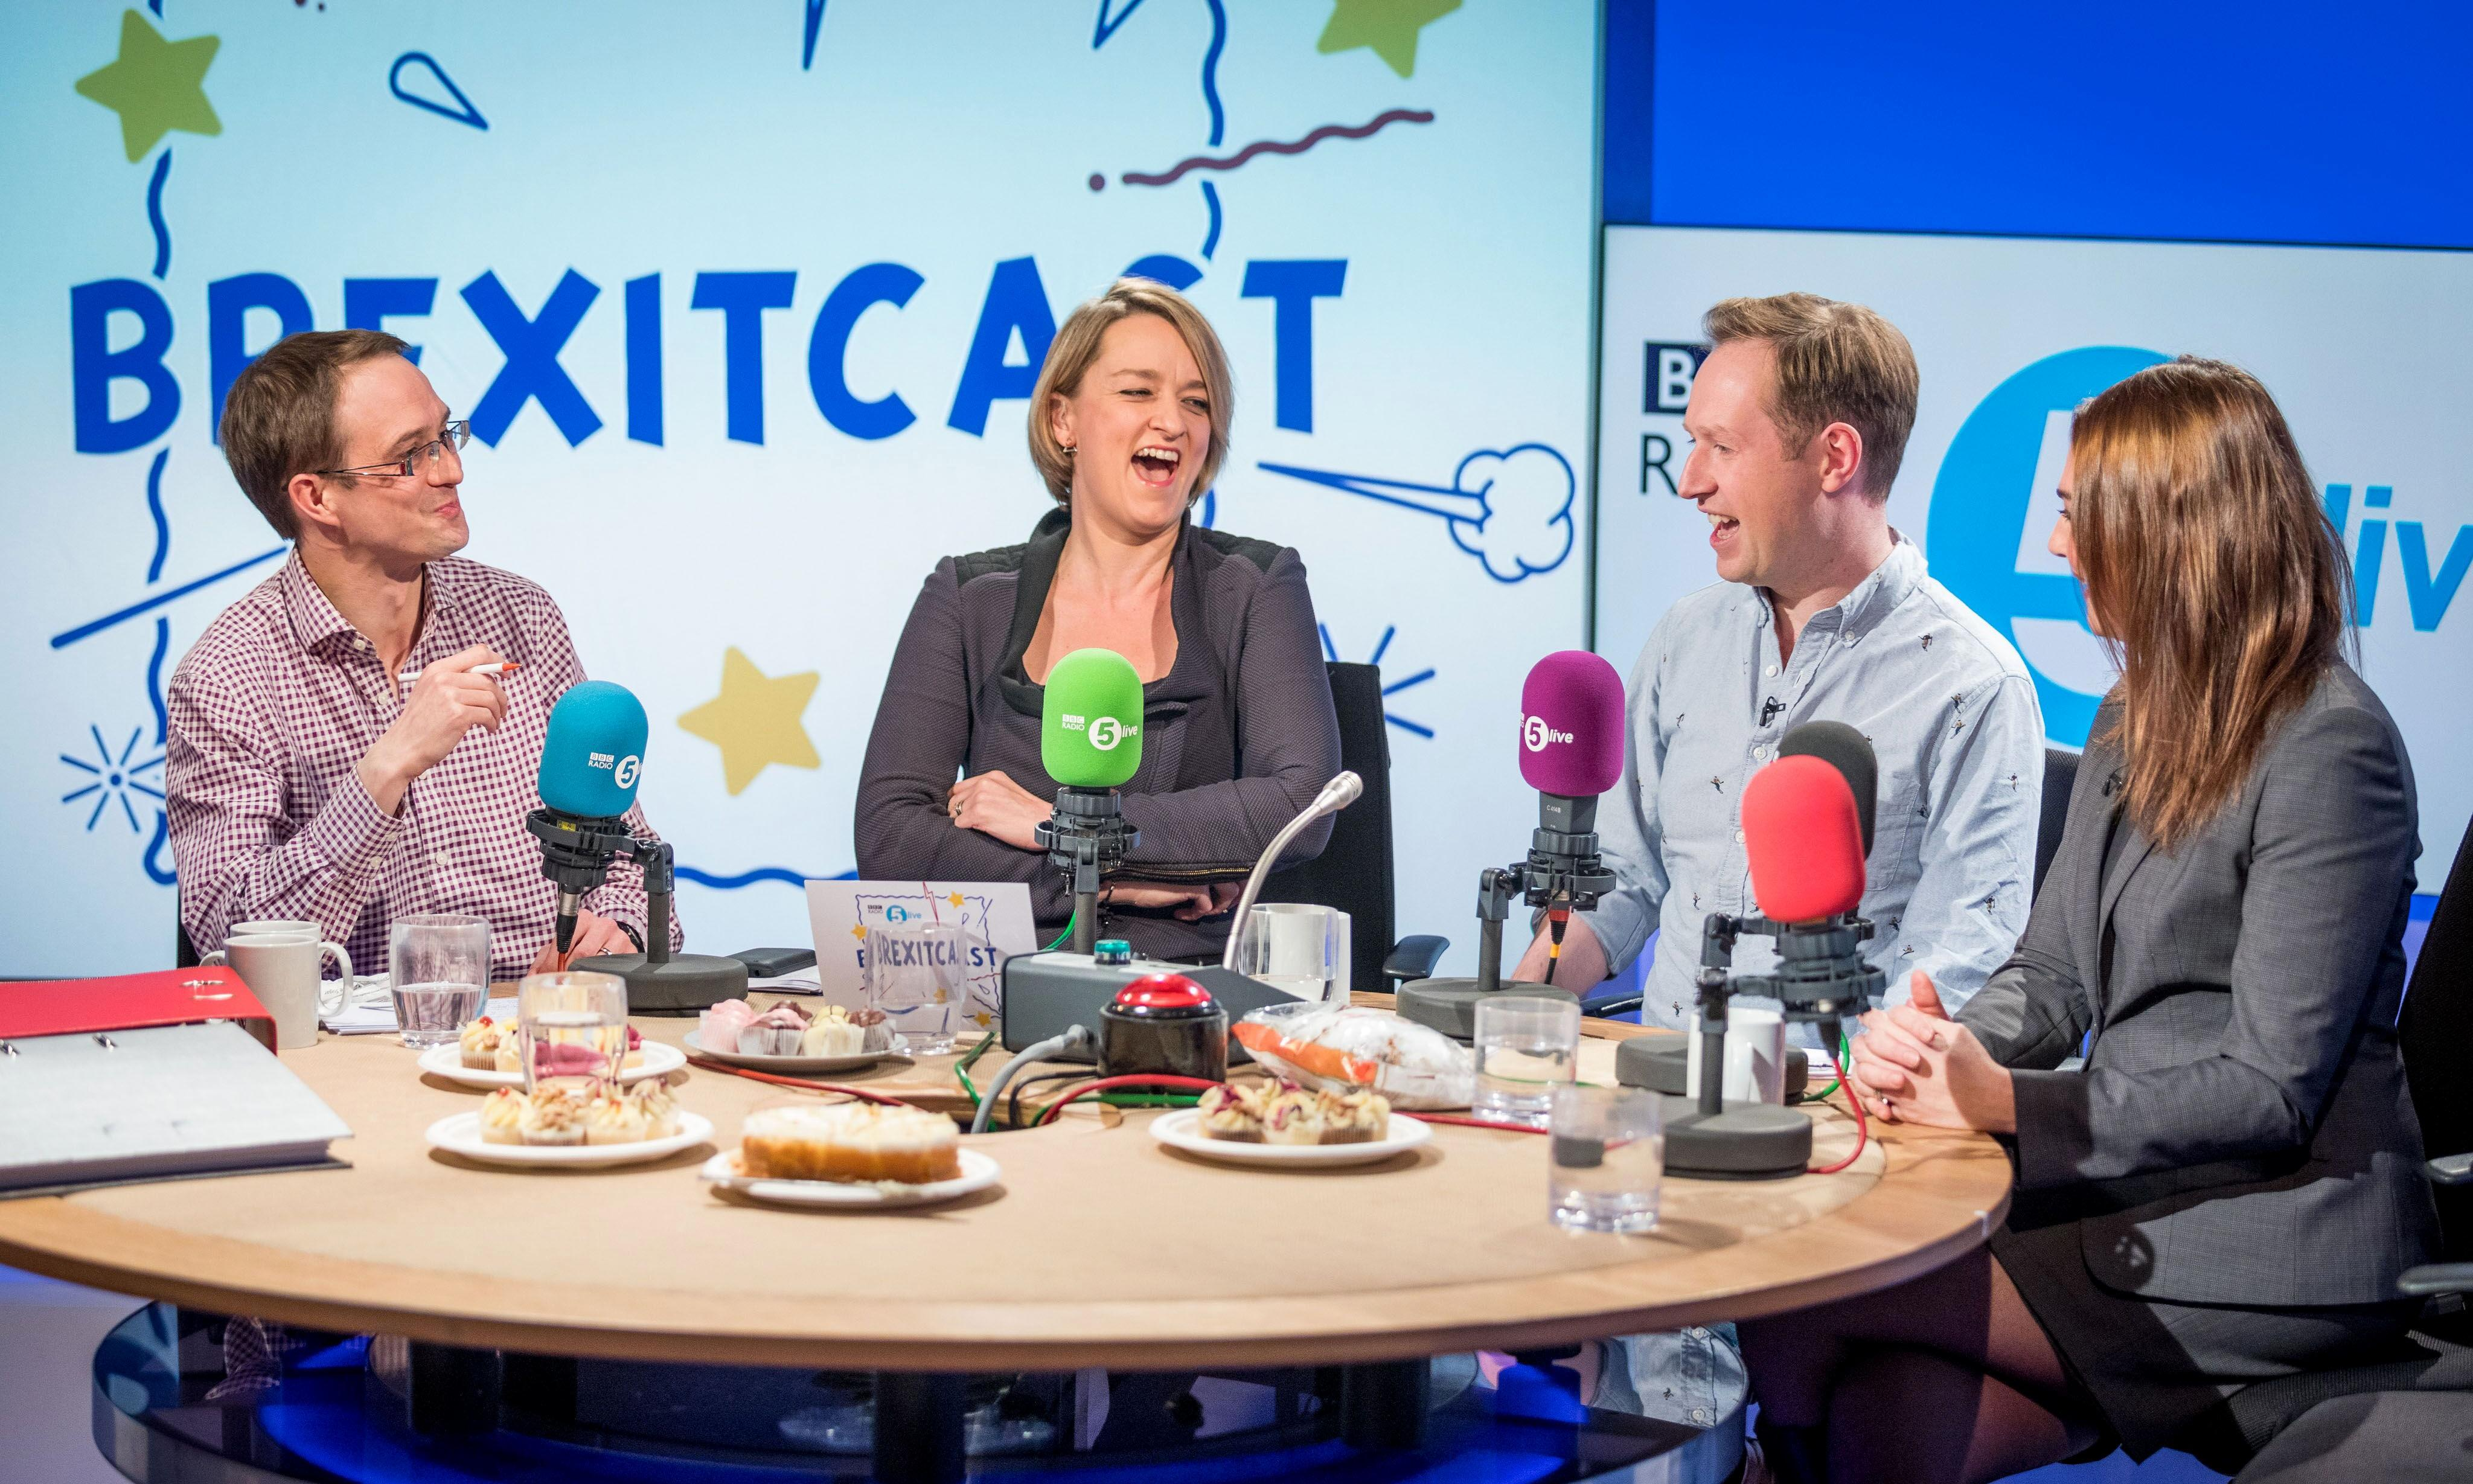 Brexitcast makes the move to TV – podcasts of the week